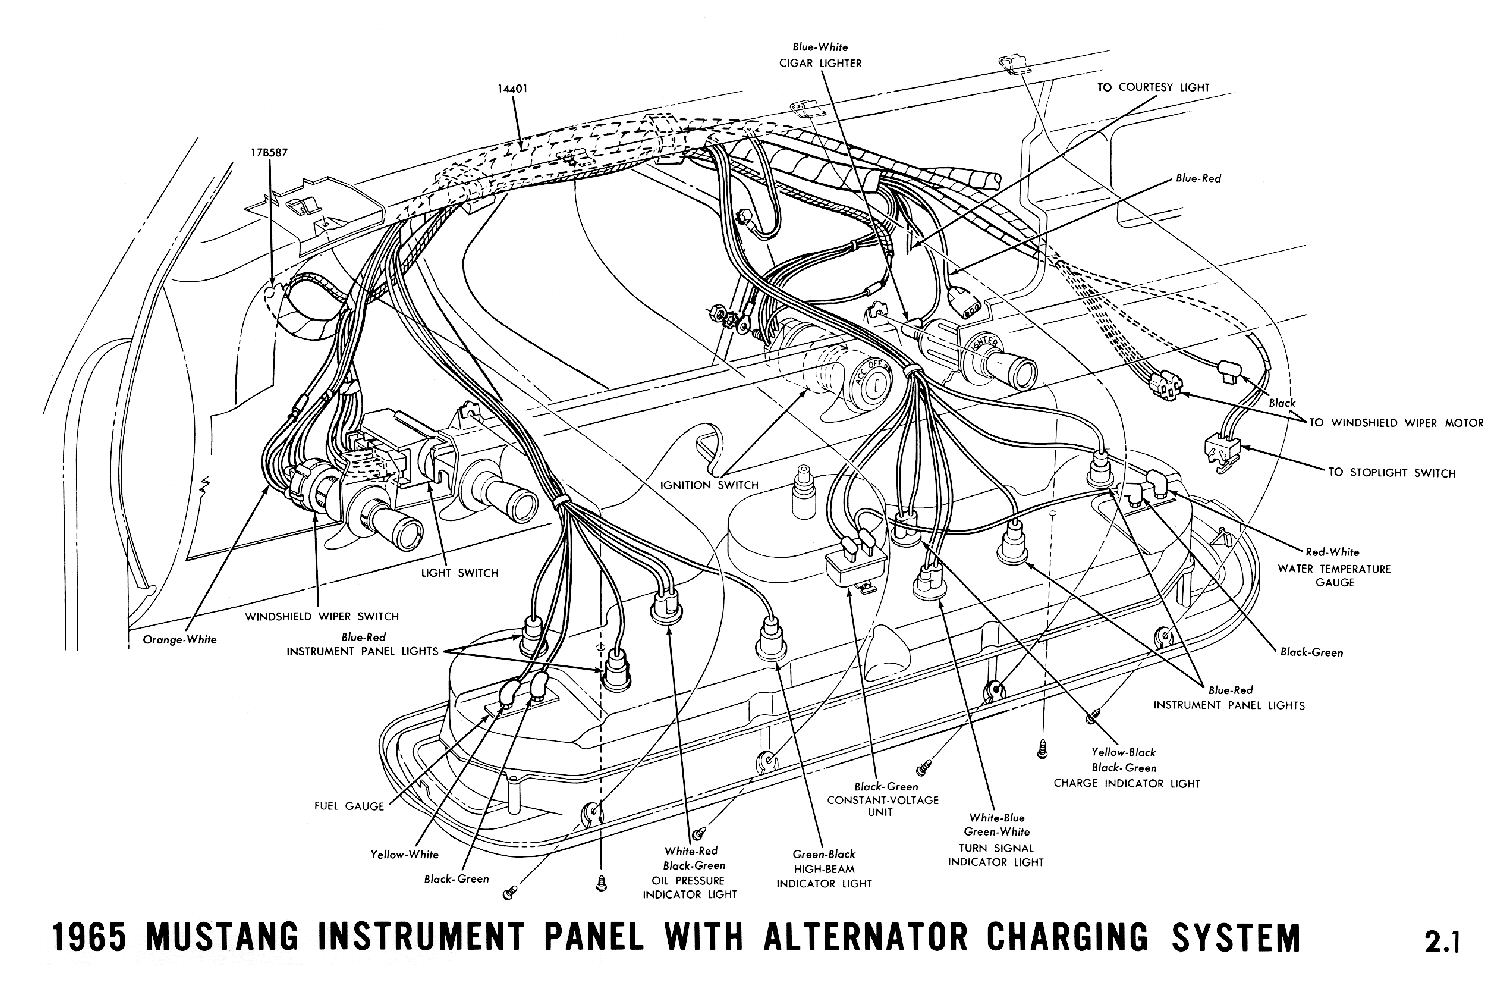 1965a 1965 mustang wiring diagrams average joe restoration 1966 mustang alternator wiring diagram at mifinder.co